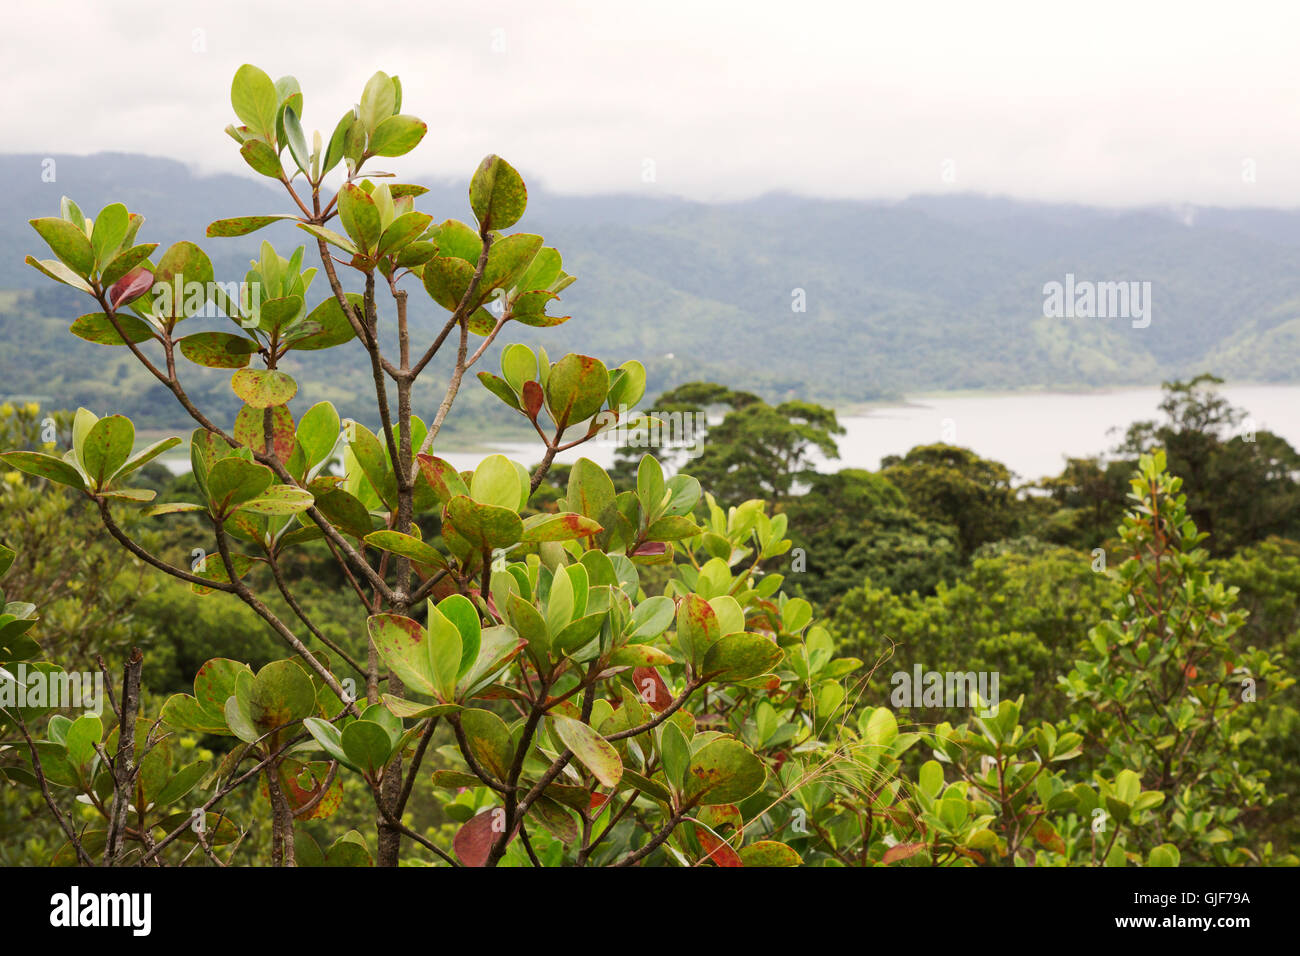 Costa Rica landscape, overlooking Arenal lake, Arenal, Costa Rica, Central America - Stock Image